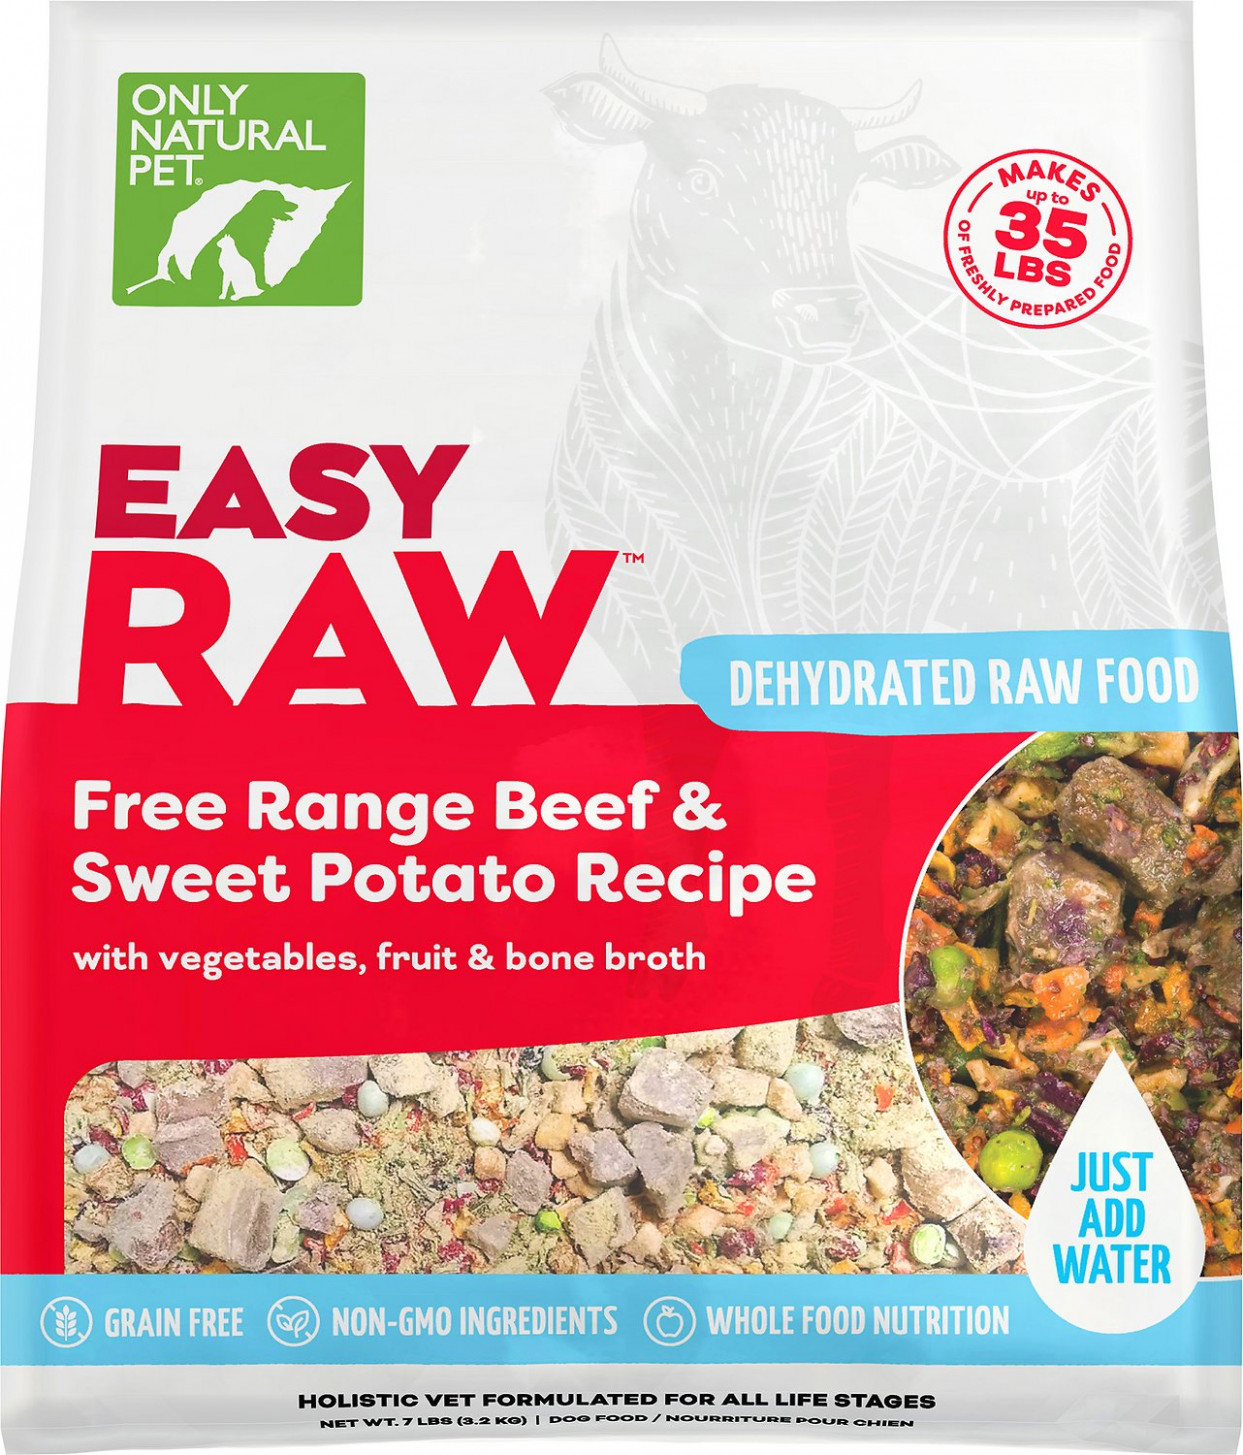 Only Natural Pet EasyRaw Beef & Sweet Potato Raw Grain Free Dehydrated Dog  Food, 14 Lb Bag - Recipes Using Dehydrated Food